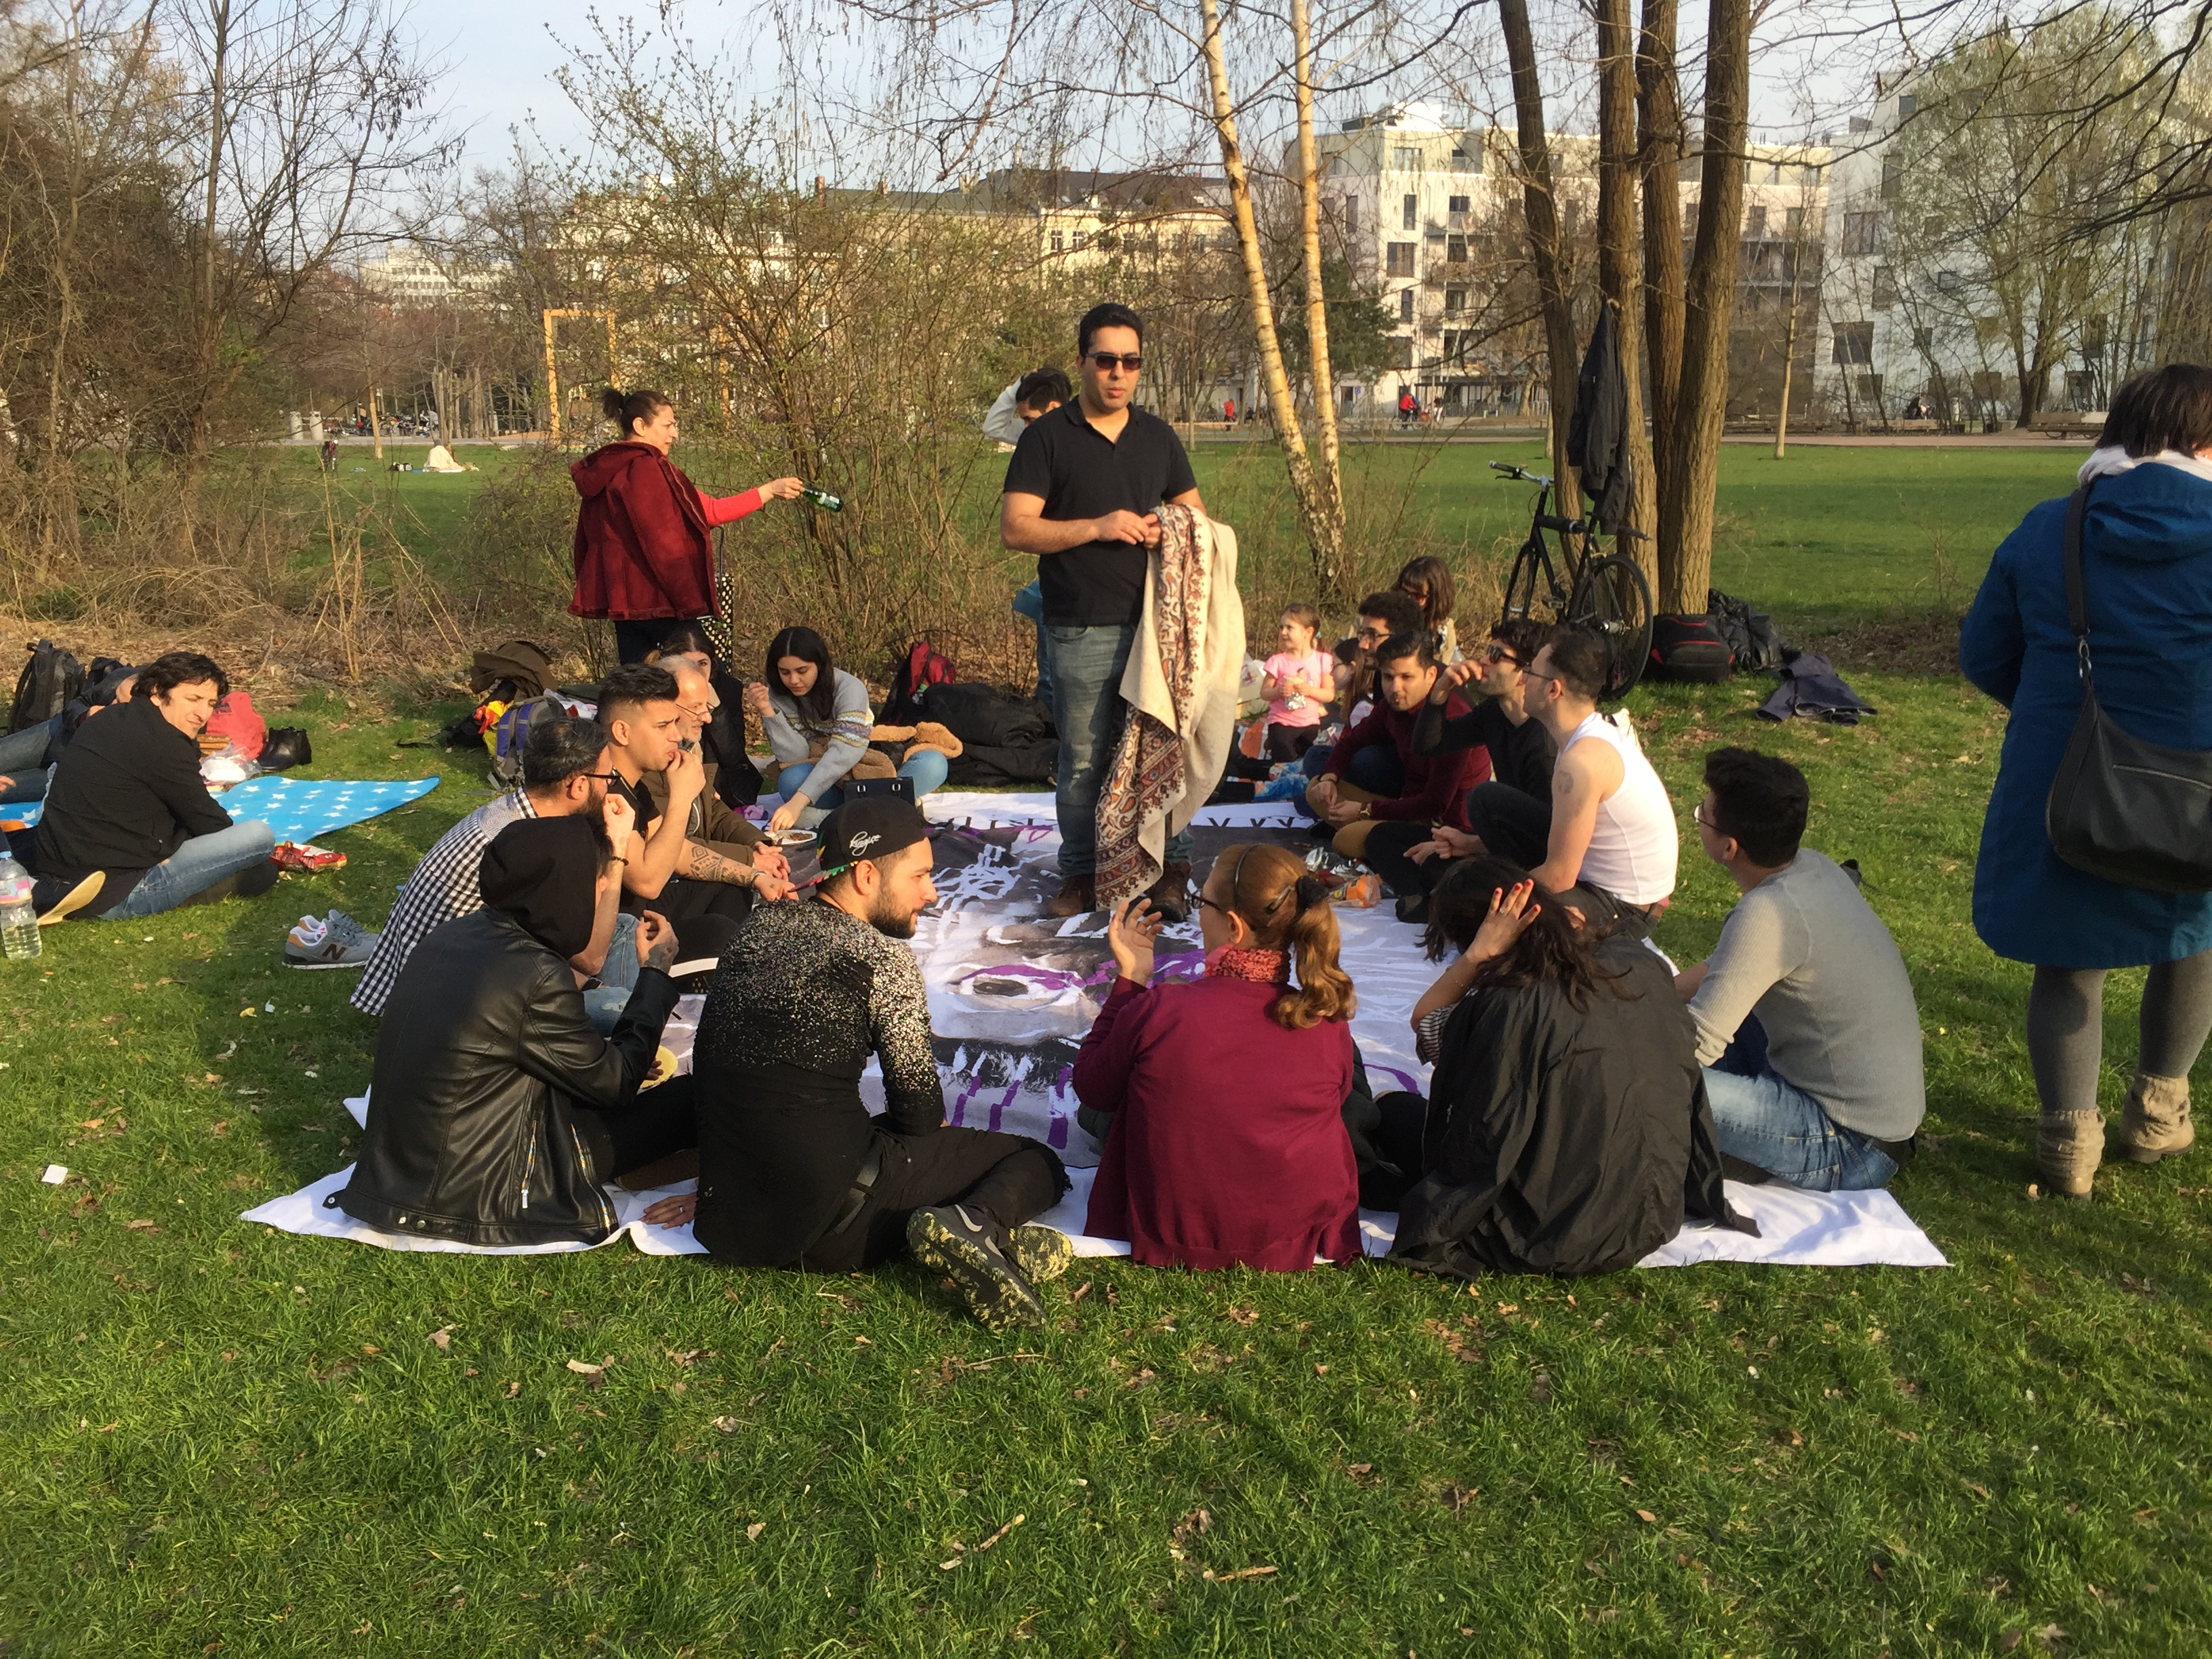 Gathering in the park on the 13th day after Nowruz.